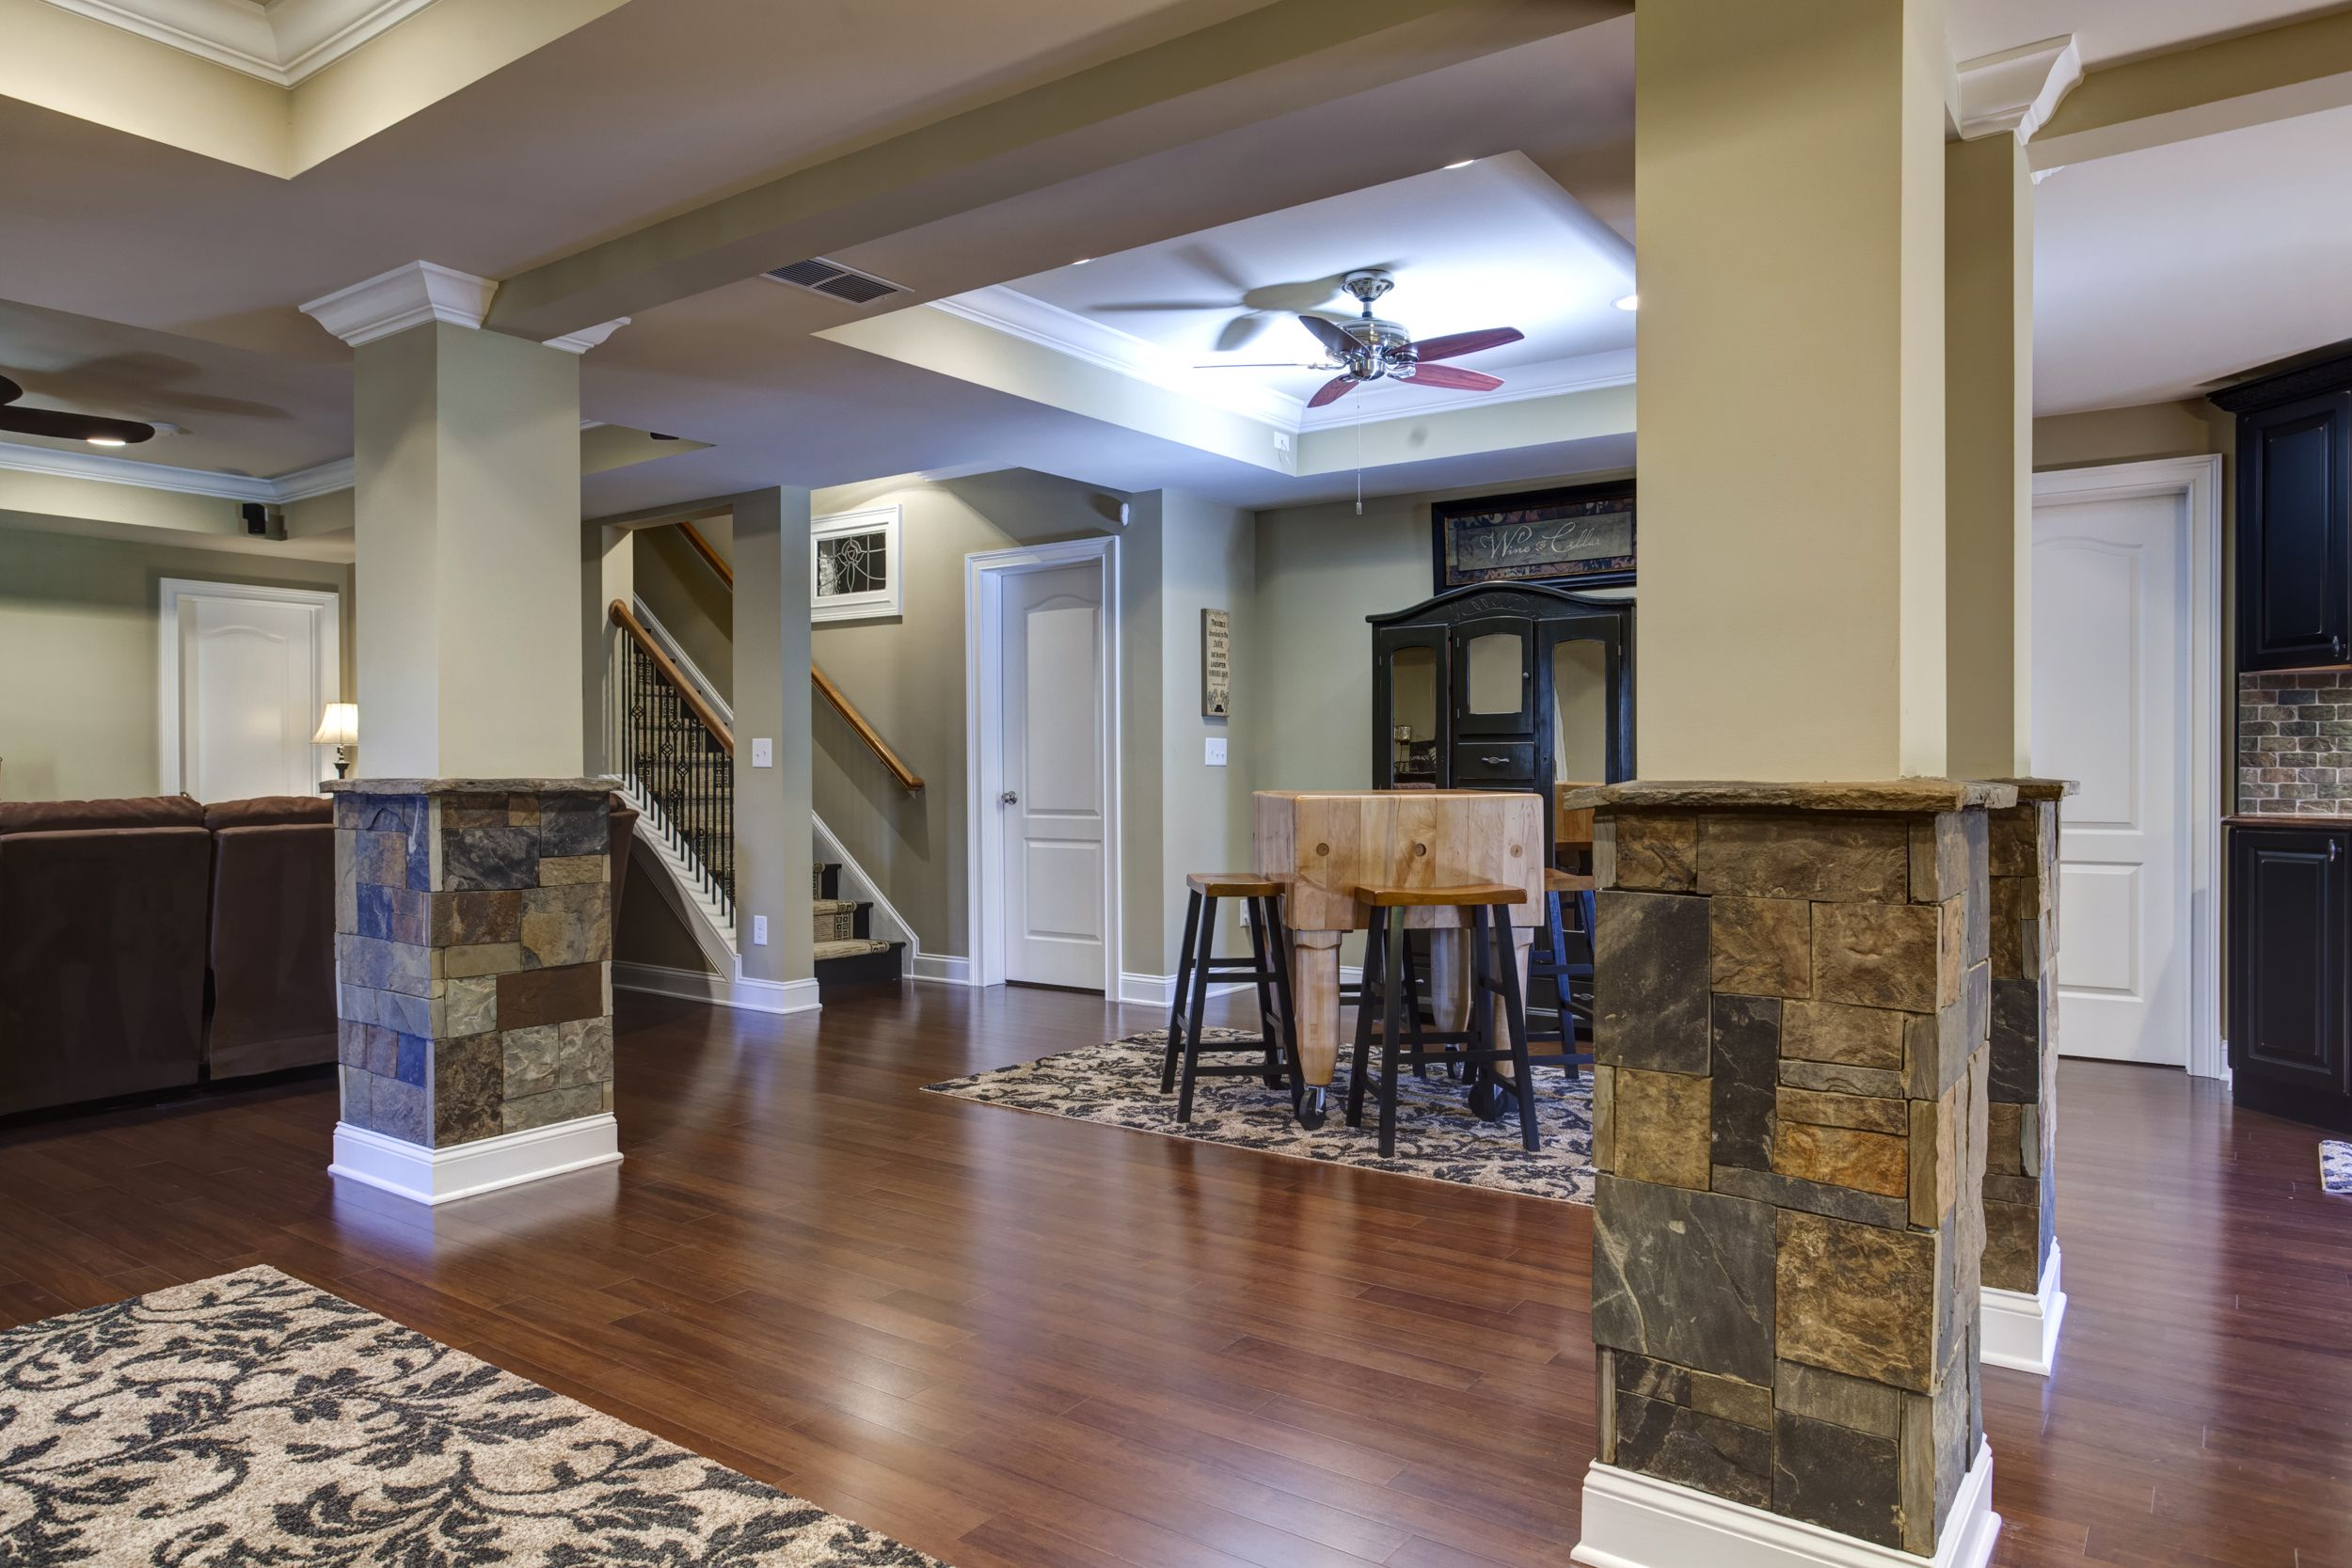 Basement With Hardwood Floors, Stone Columns, Soffits In Ceiling, Opening